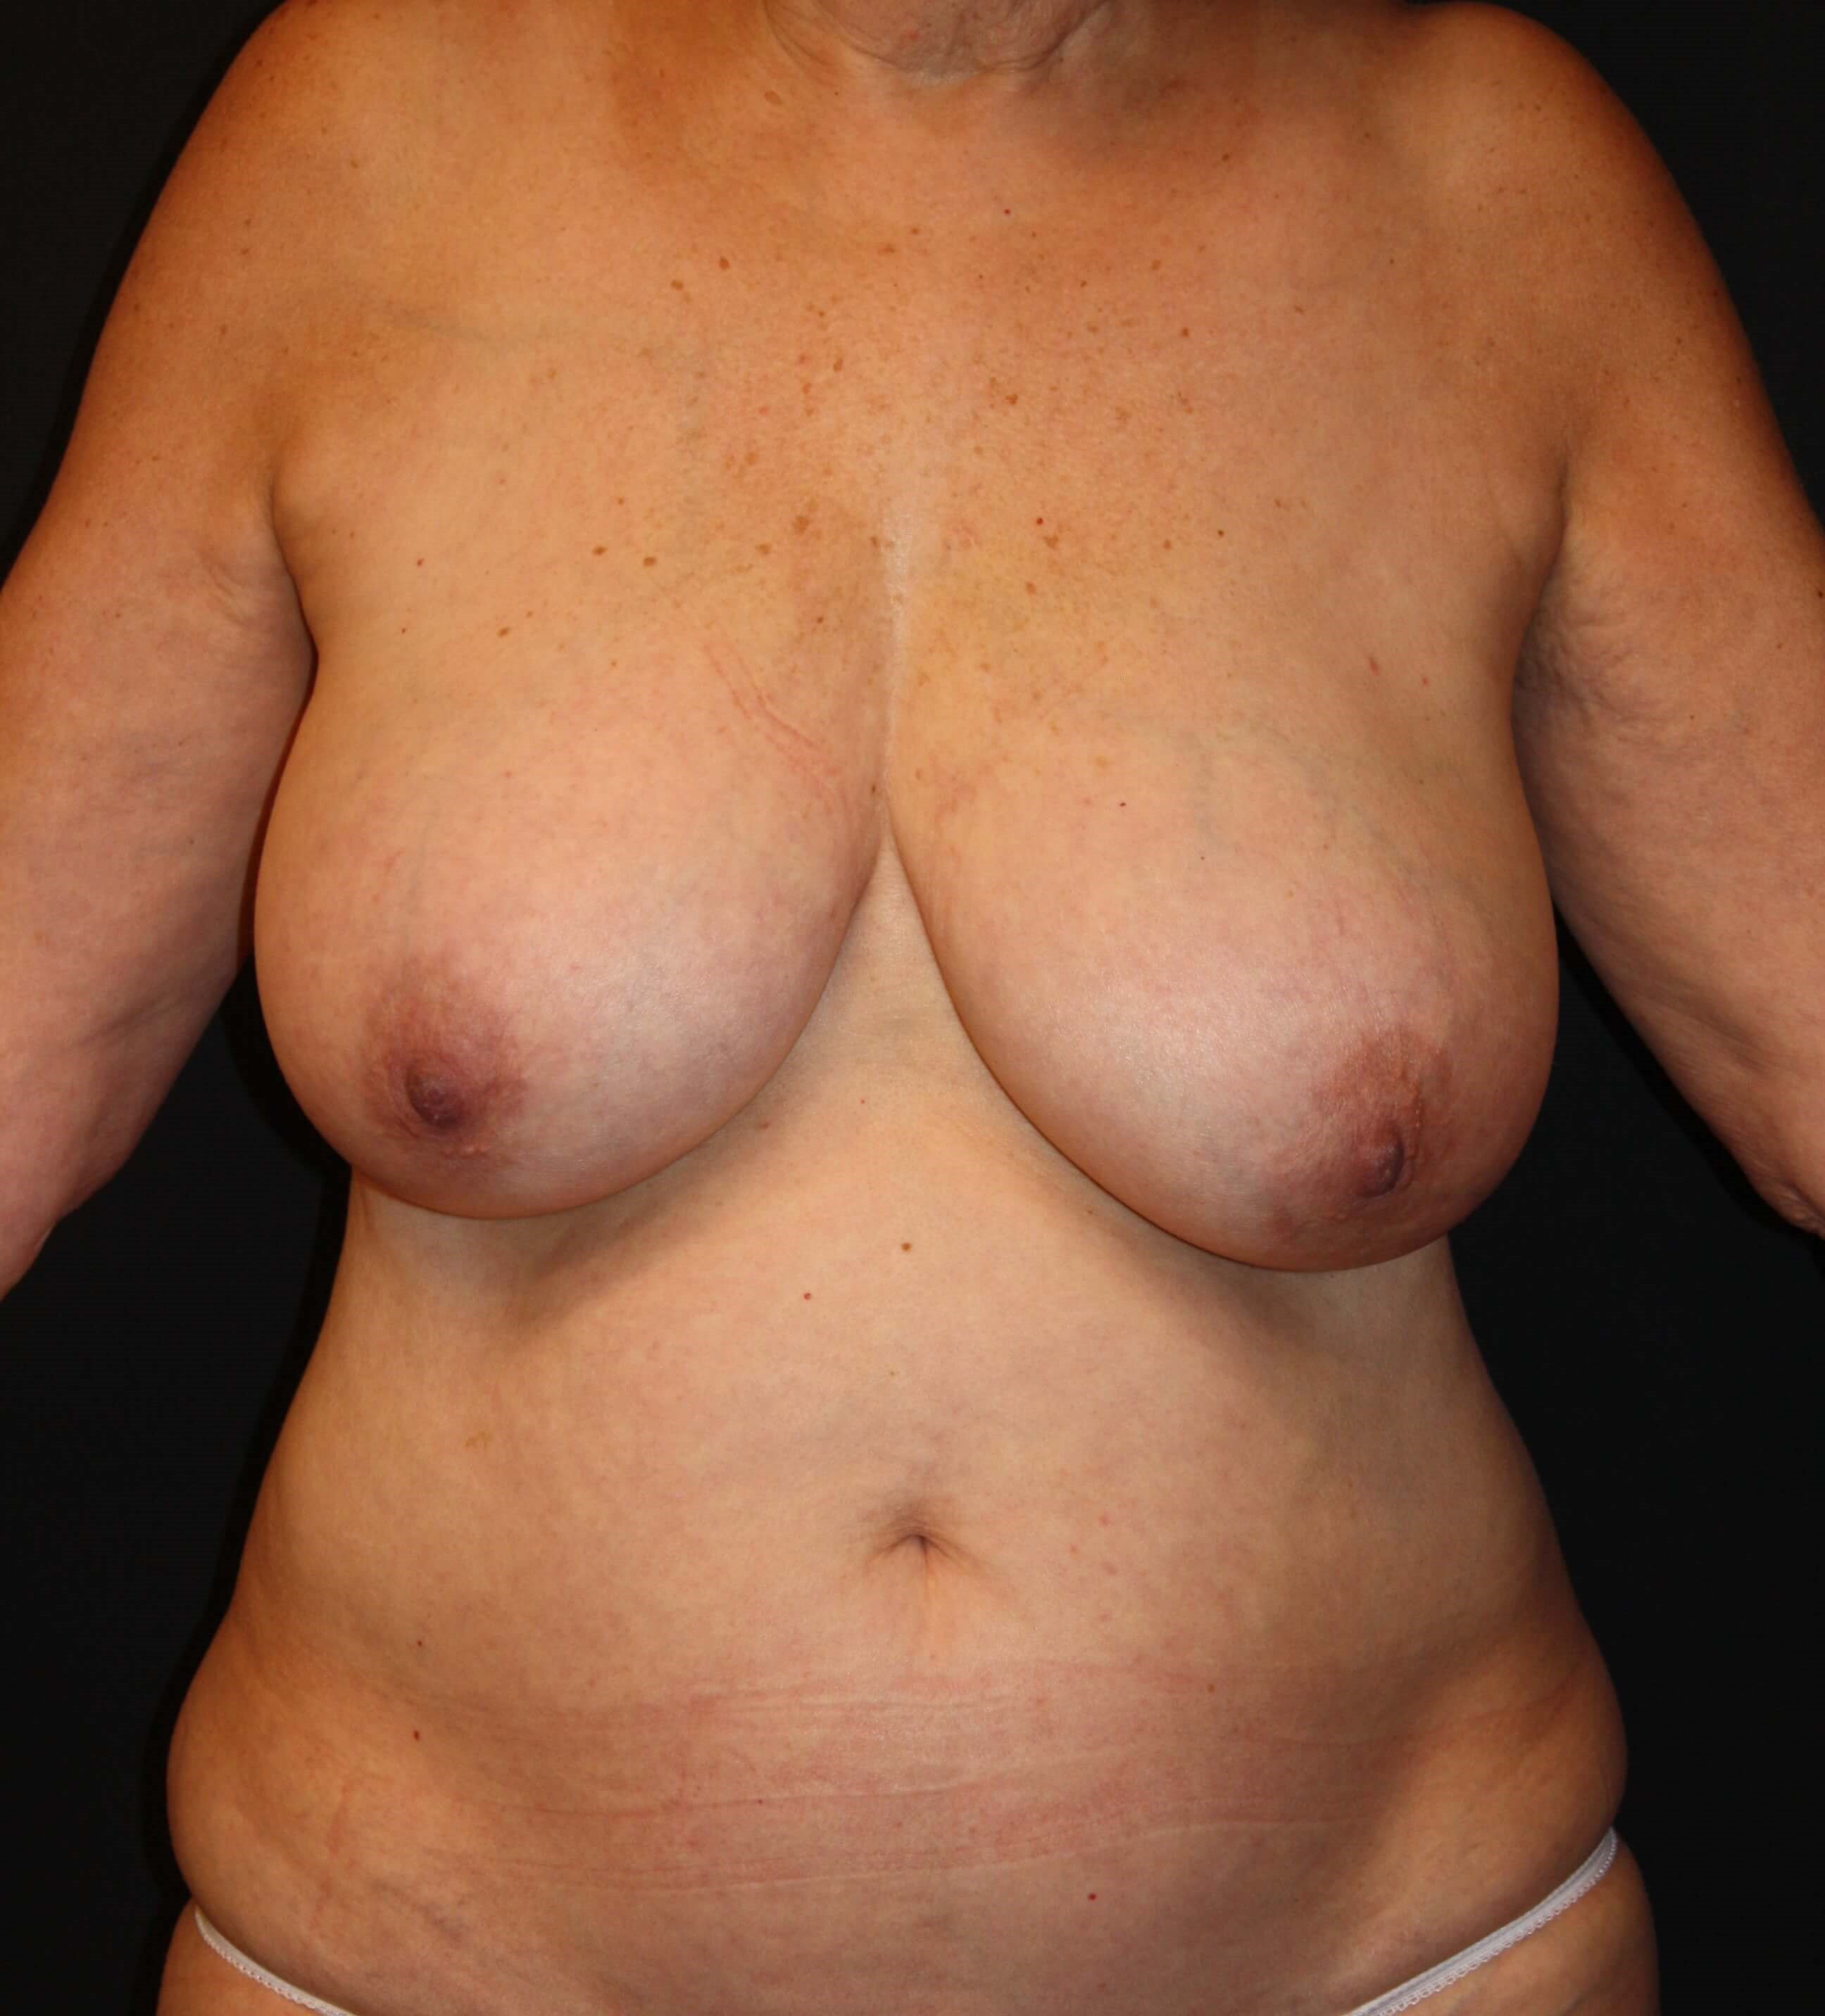 DIEP Flap Front View Before Breast Reconstruction